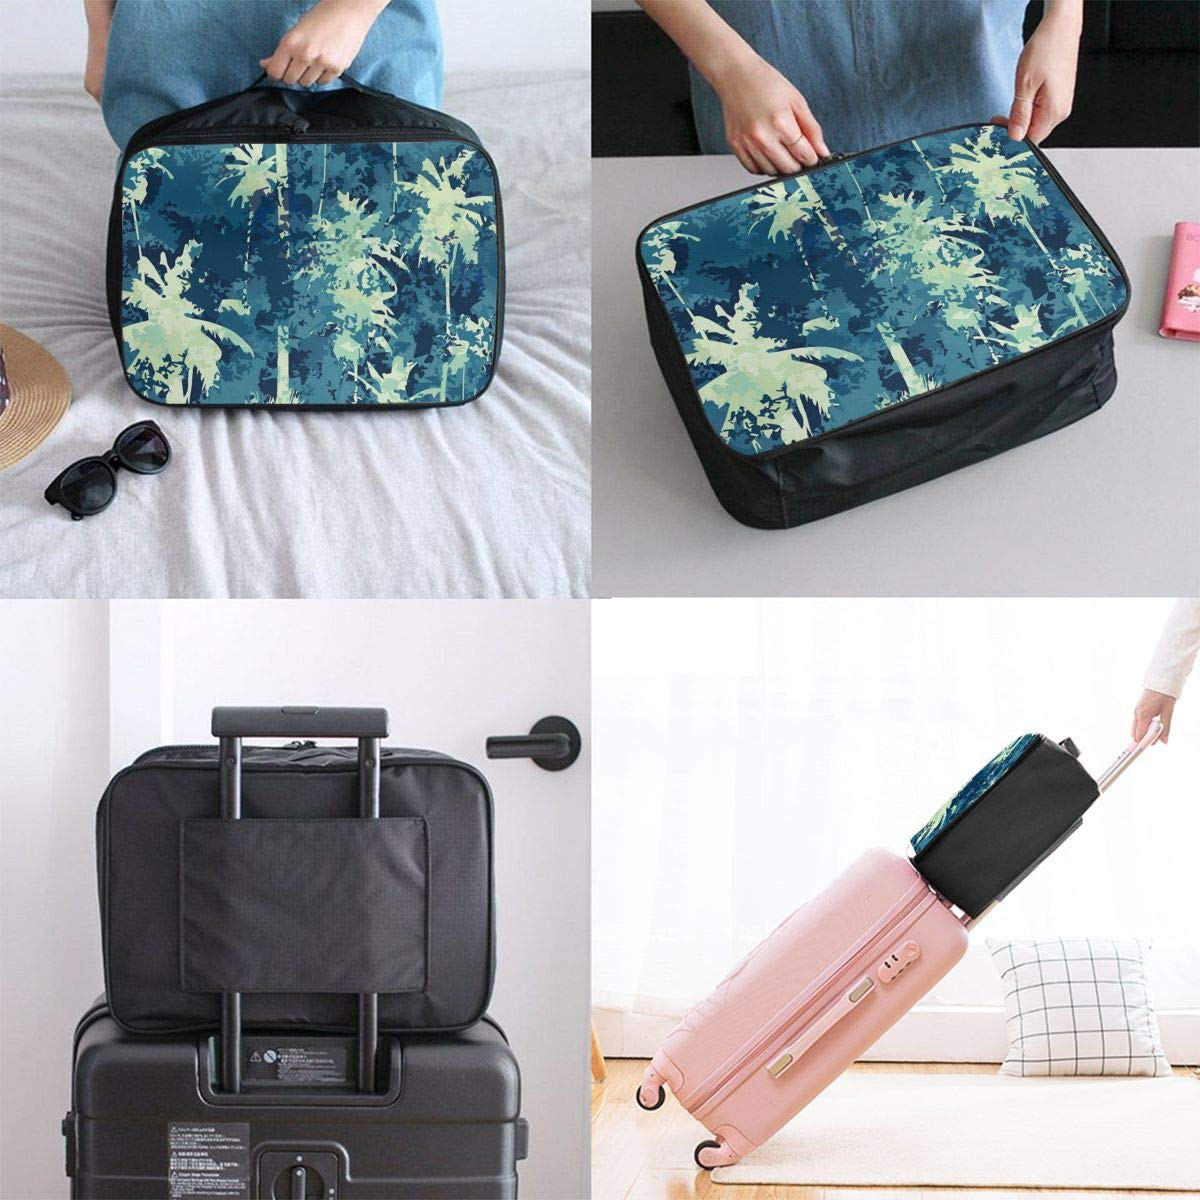 Hawaiian Palm Tree Maple Leaf Travel Lightweight Waterproof Foldable Storage Portable Luggage Duffle Tote Bag Large Capacity In Trolley Handle Bags 6x11x15 Inch